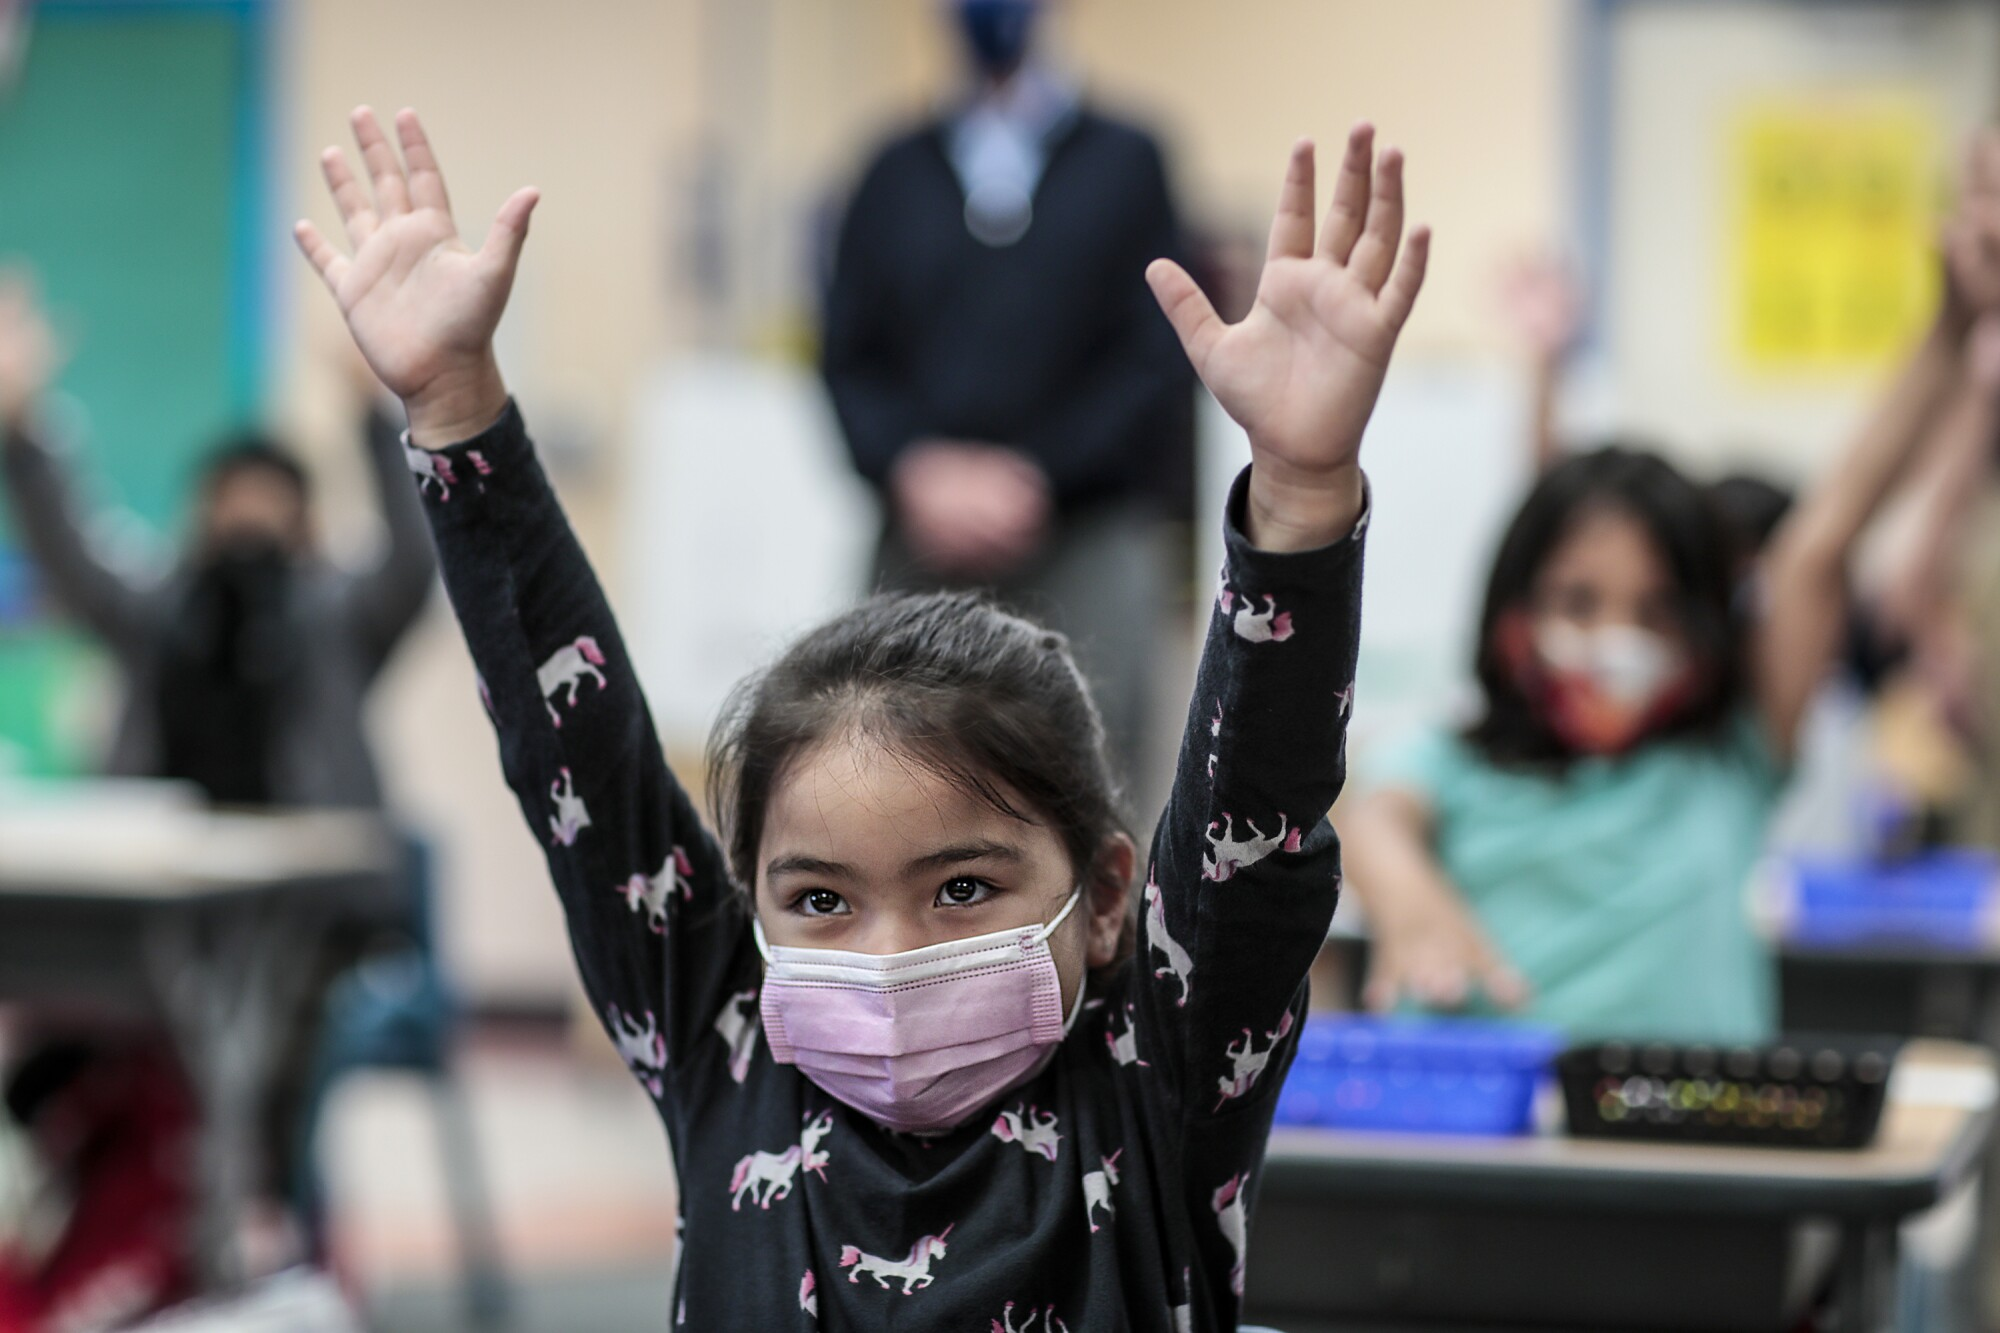 A girl in a pink face mask lifts both arms into the air.